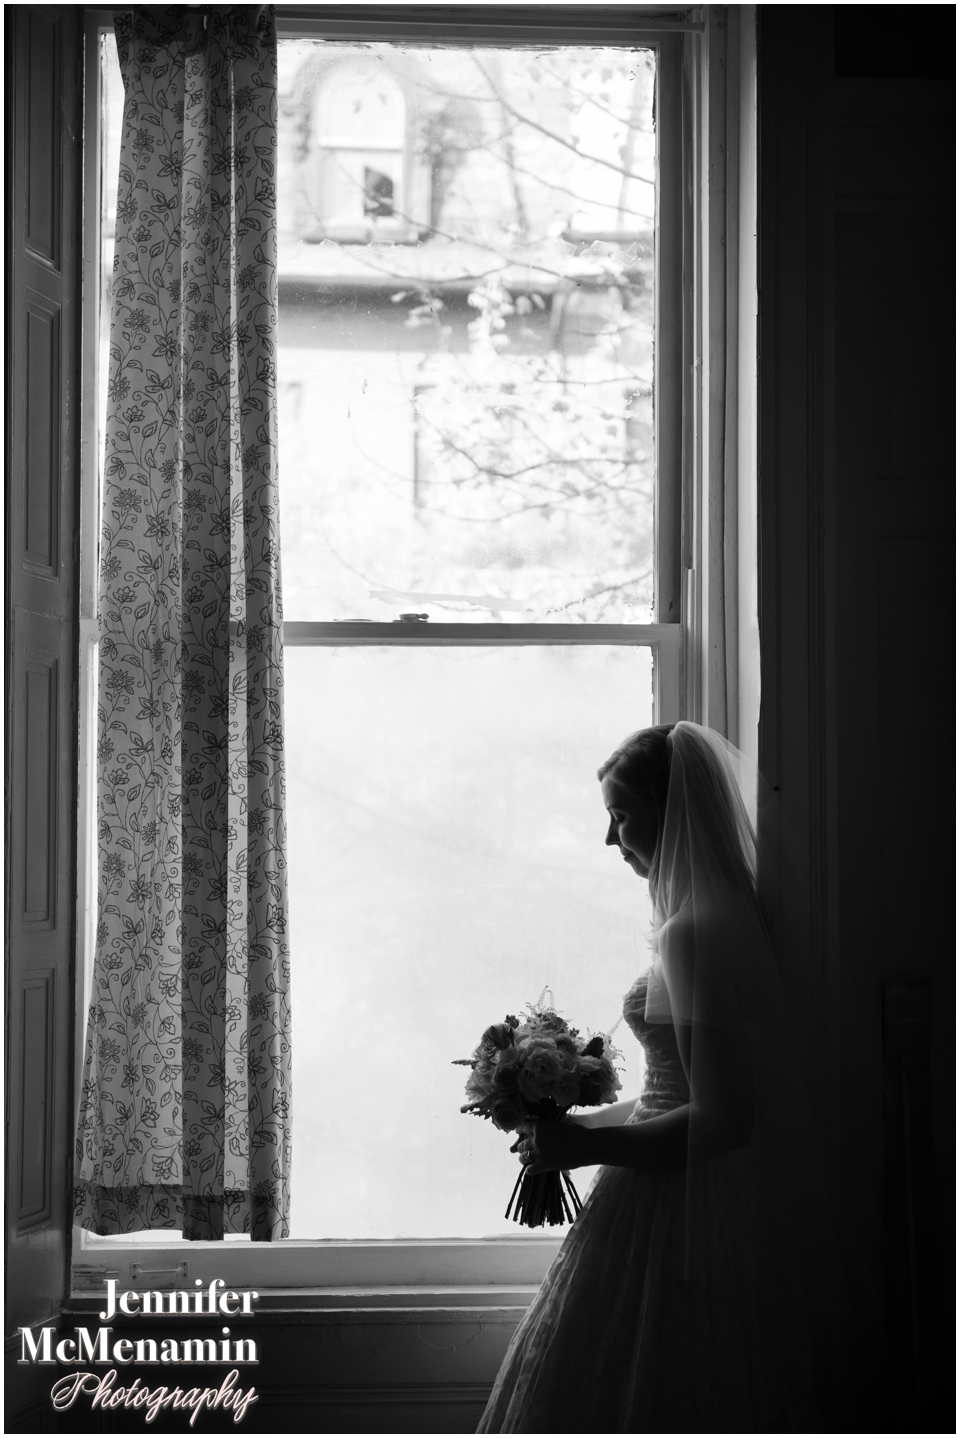 0024-WebbSlivnick_00672-0135_JenniferMcMenaminPhotography_George-Peabody-Library-wedding_Baltimore-wedding-photography_Baltimore-wedding-photographer